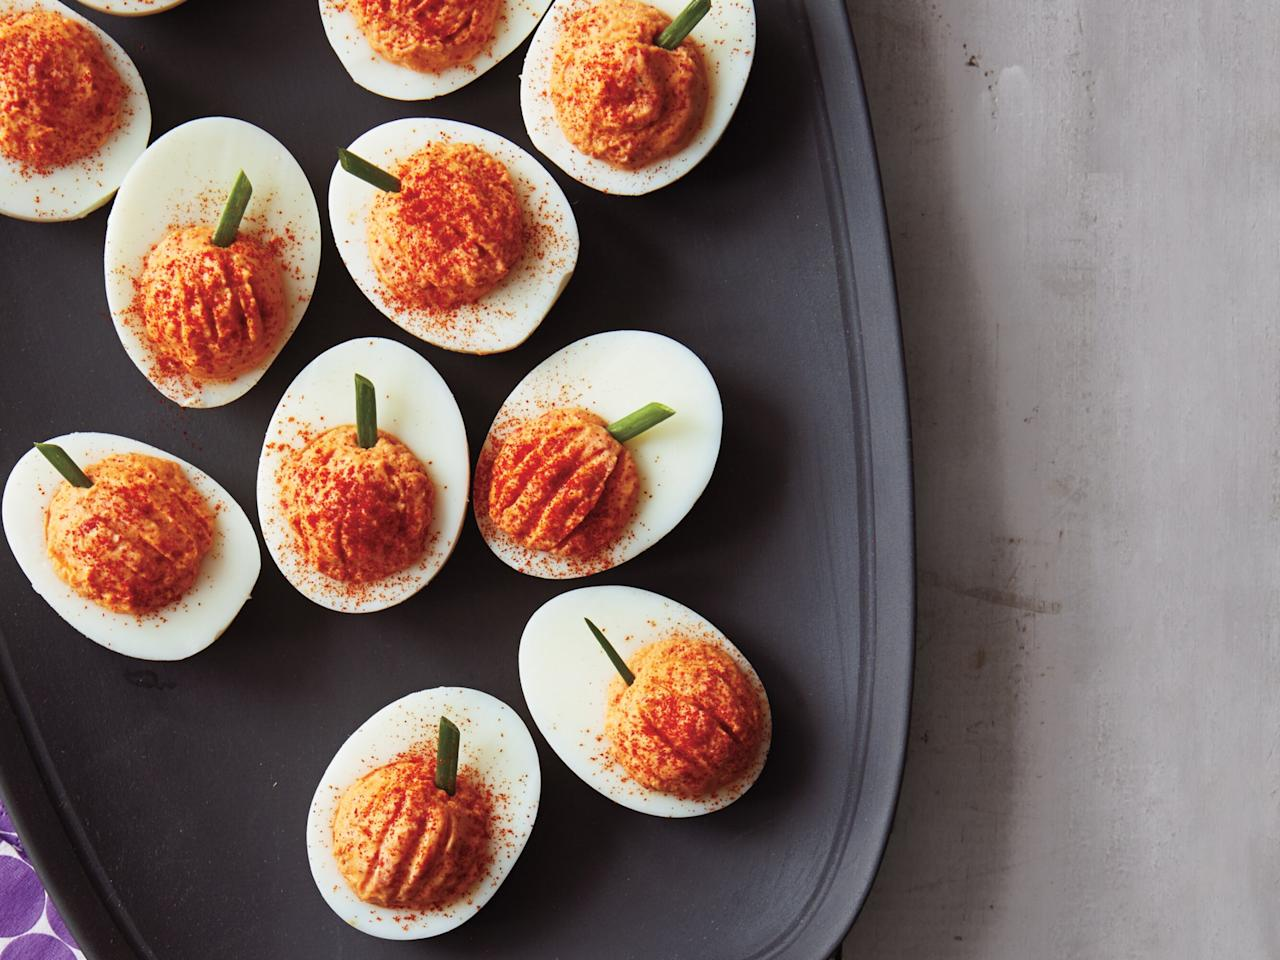 "<p>Serve these devilishly tasty treats as part of a Halloween feast. Roasted red peppers and paprika give the filling an orange hue reminiscent of jack-o-lanterns, while snipped chives resemble their stems. </p><p><a href=""https://www.myrecipes.com/recipe/red-pepper-deviled-eggs"">Roasted Red Pepper Deviled Eggs Recipe</a></p>"